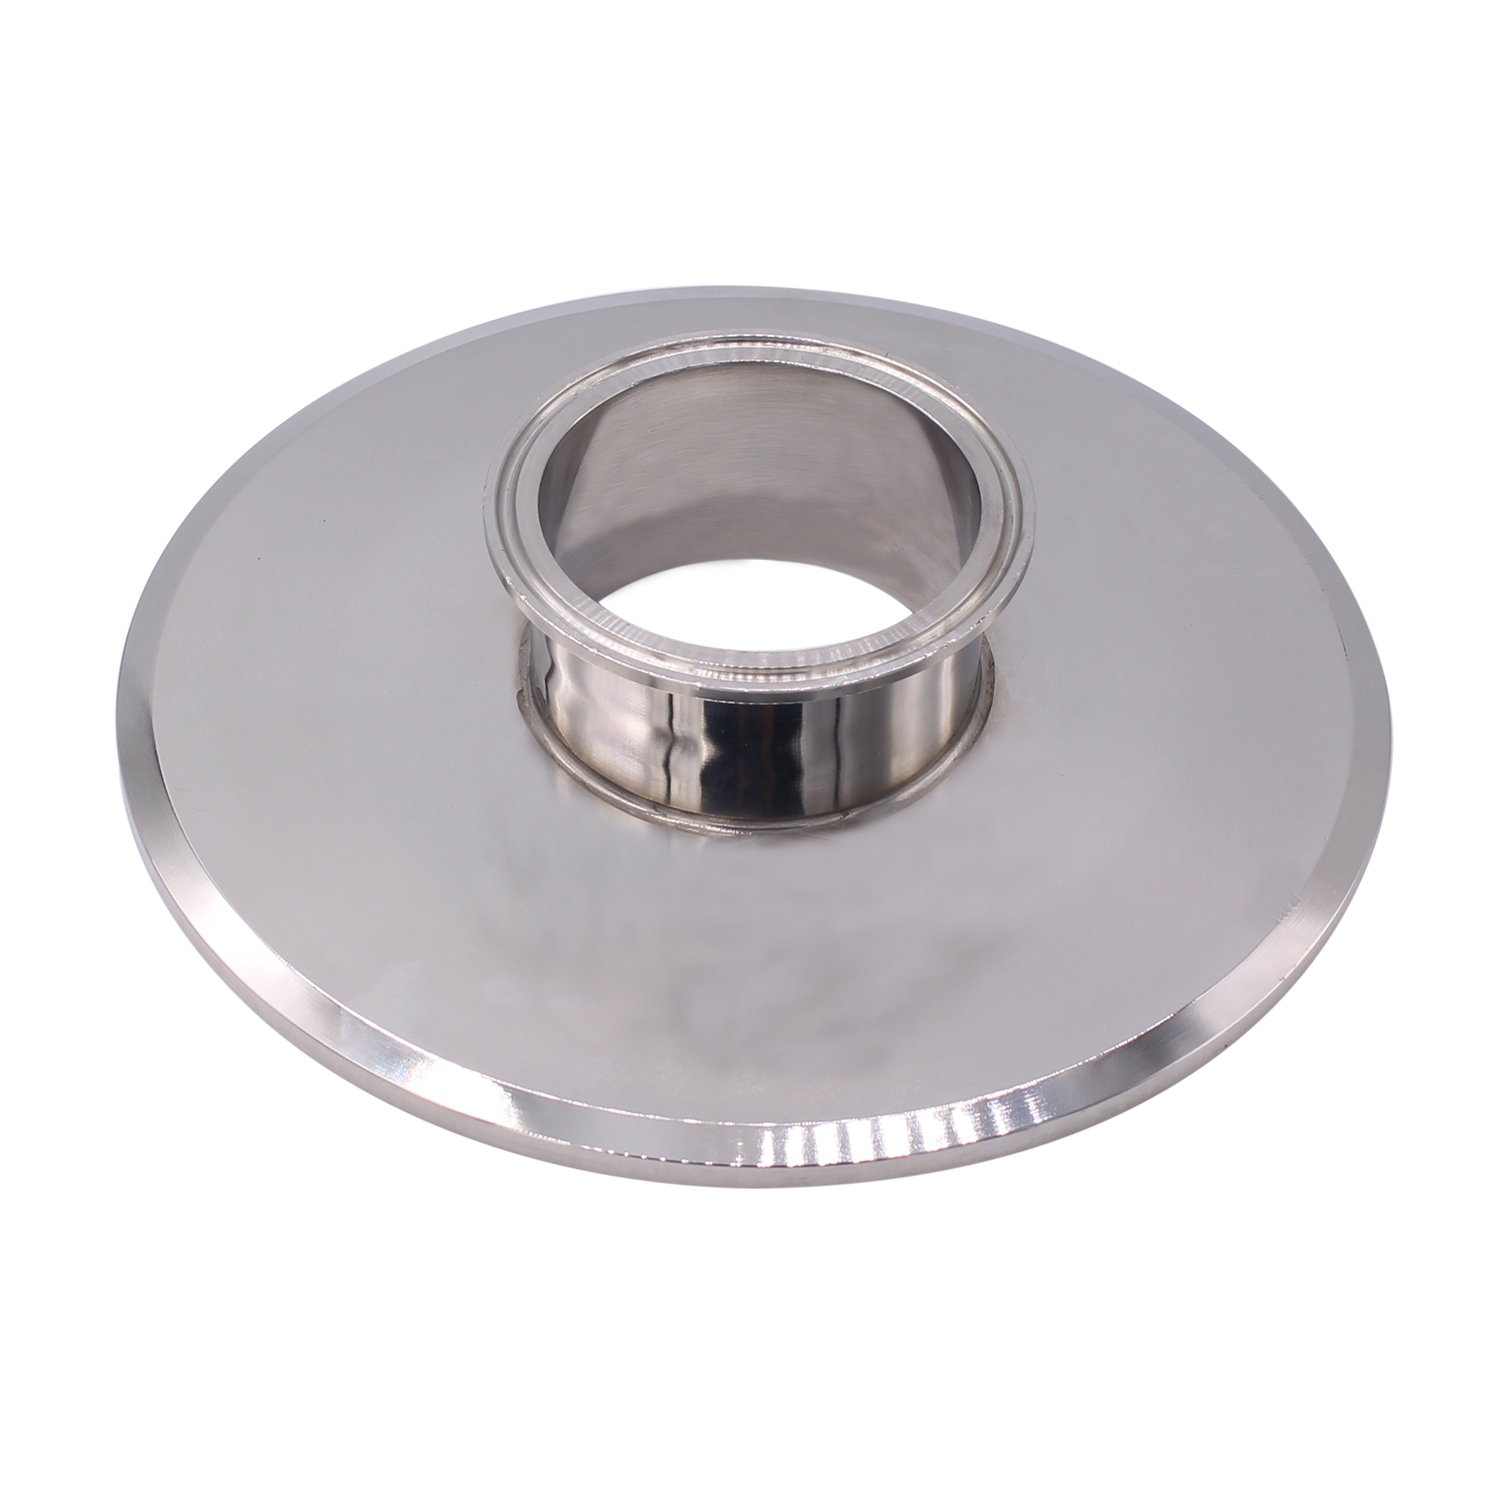 Dernord Sanitary Concentric Reducer Tri Clamp Clover Stainless Steel 304 Sanitary Fitting End Cap Reducer (Tri Clamp Size: 8 inch x 3 inch)